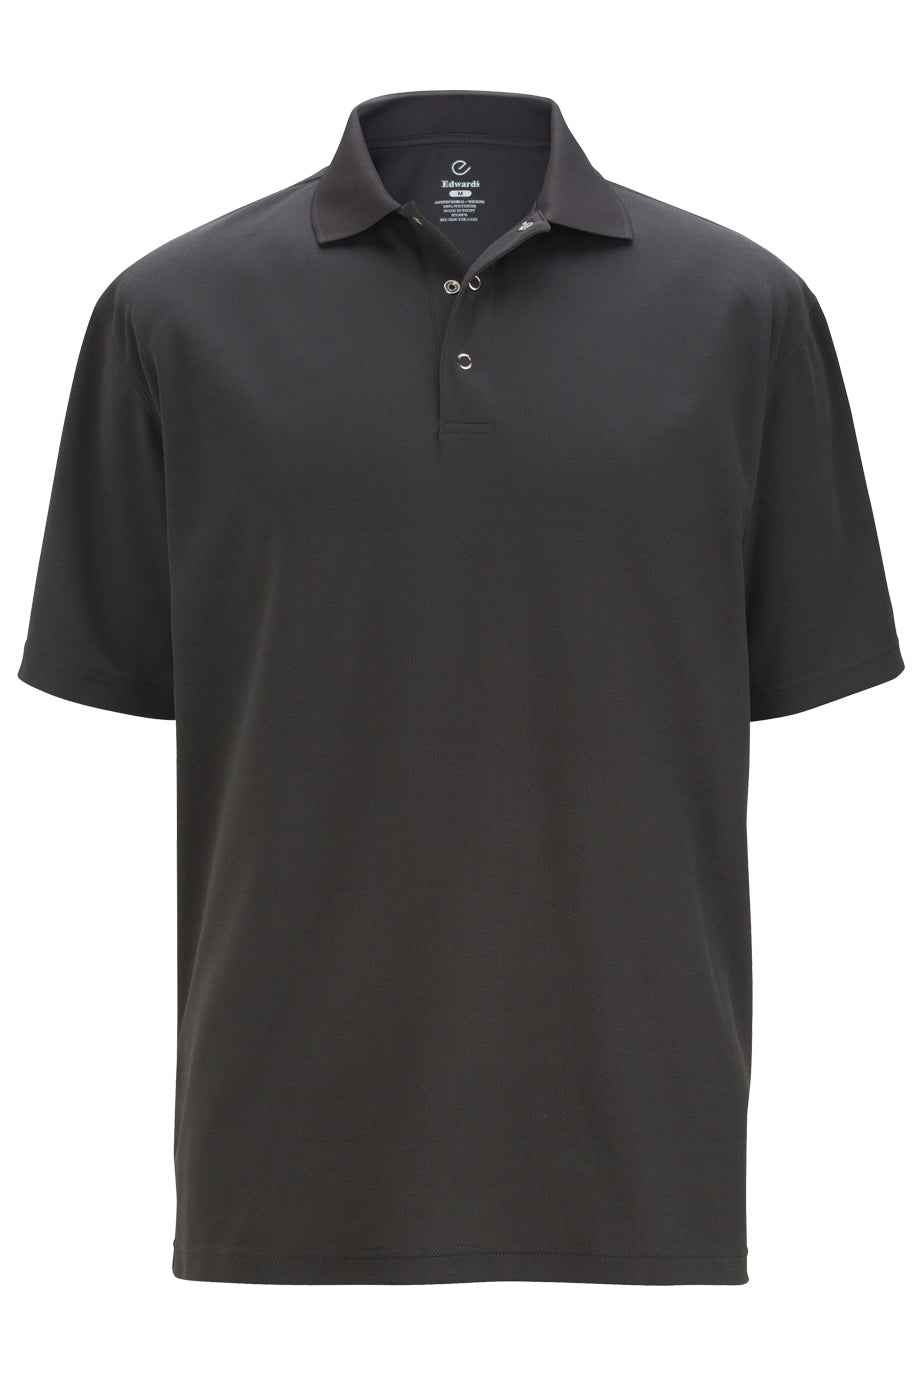 Steel Grey Edwards Mens Snap Front Hi-Performance Short Sleeve Polo